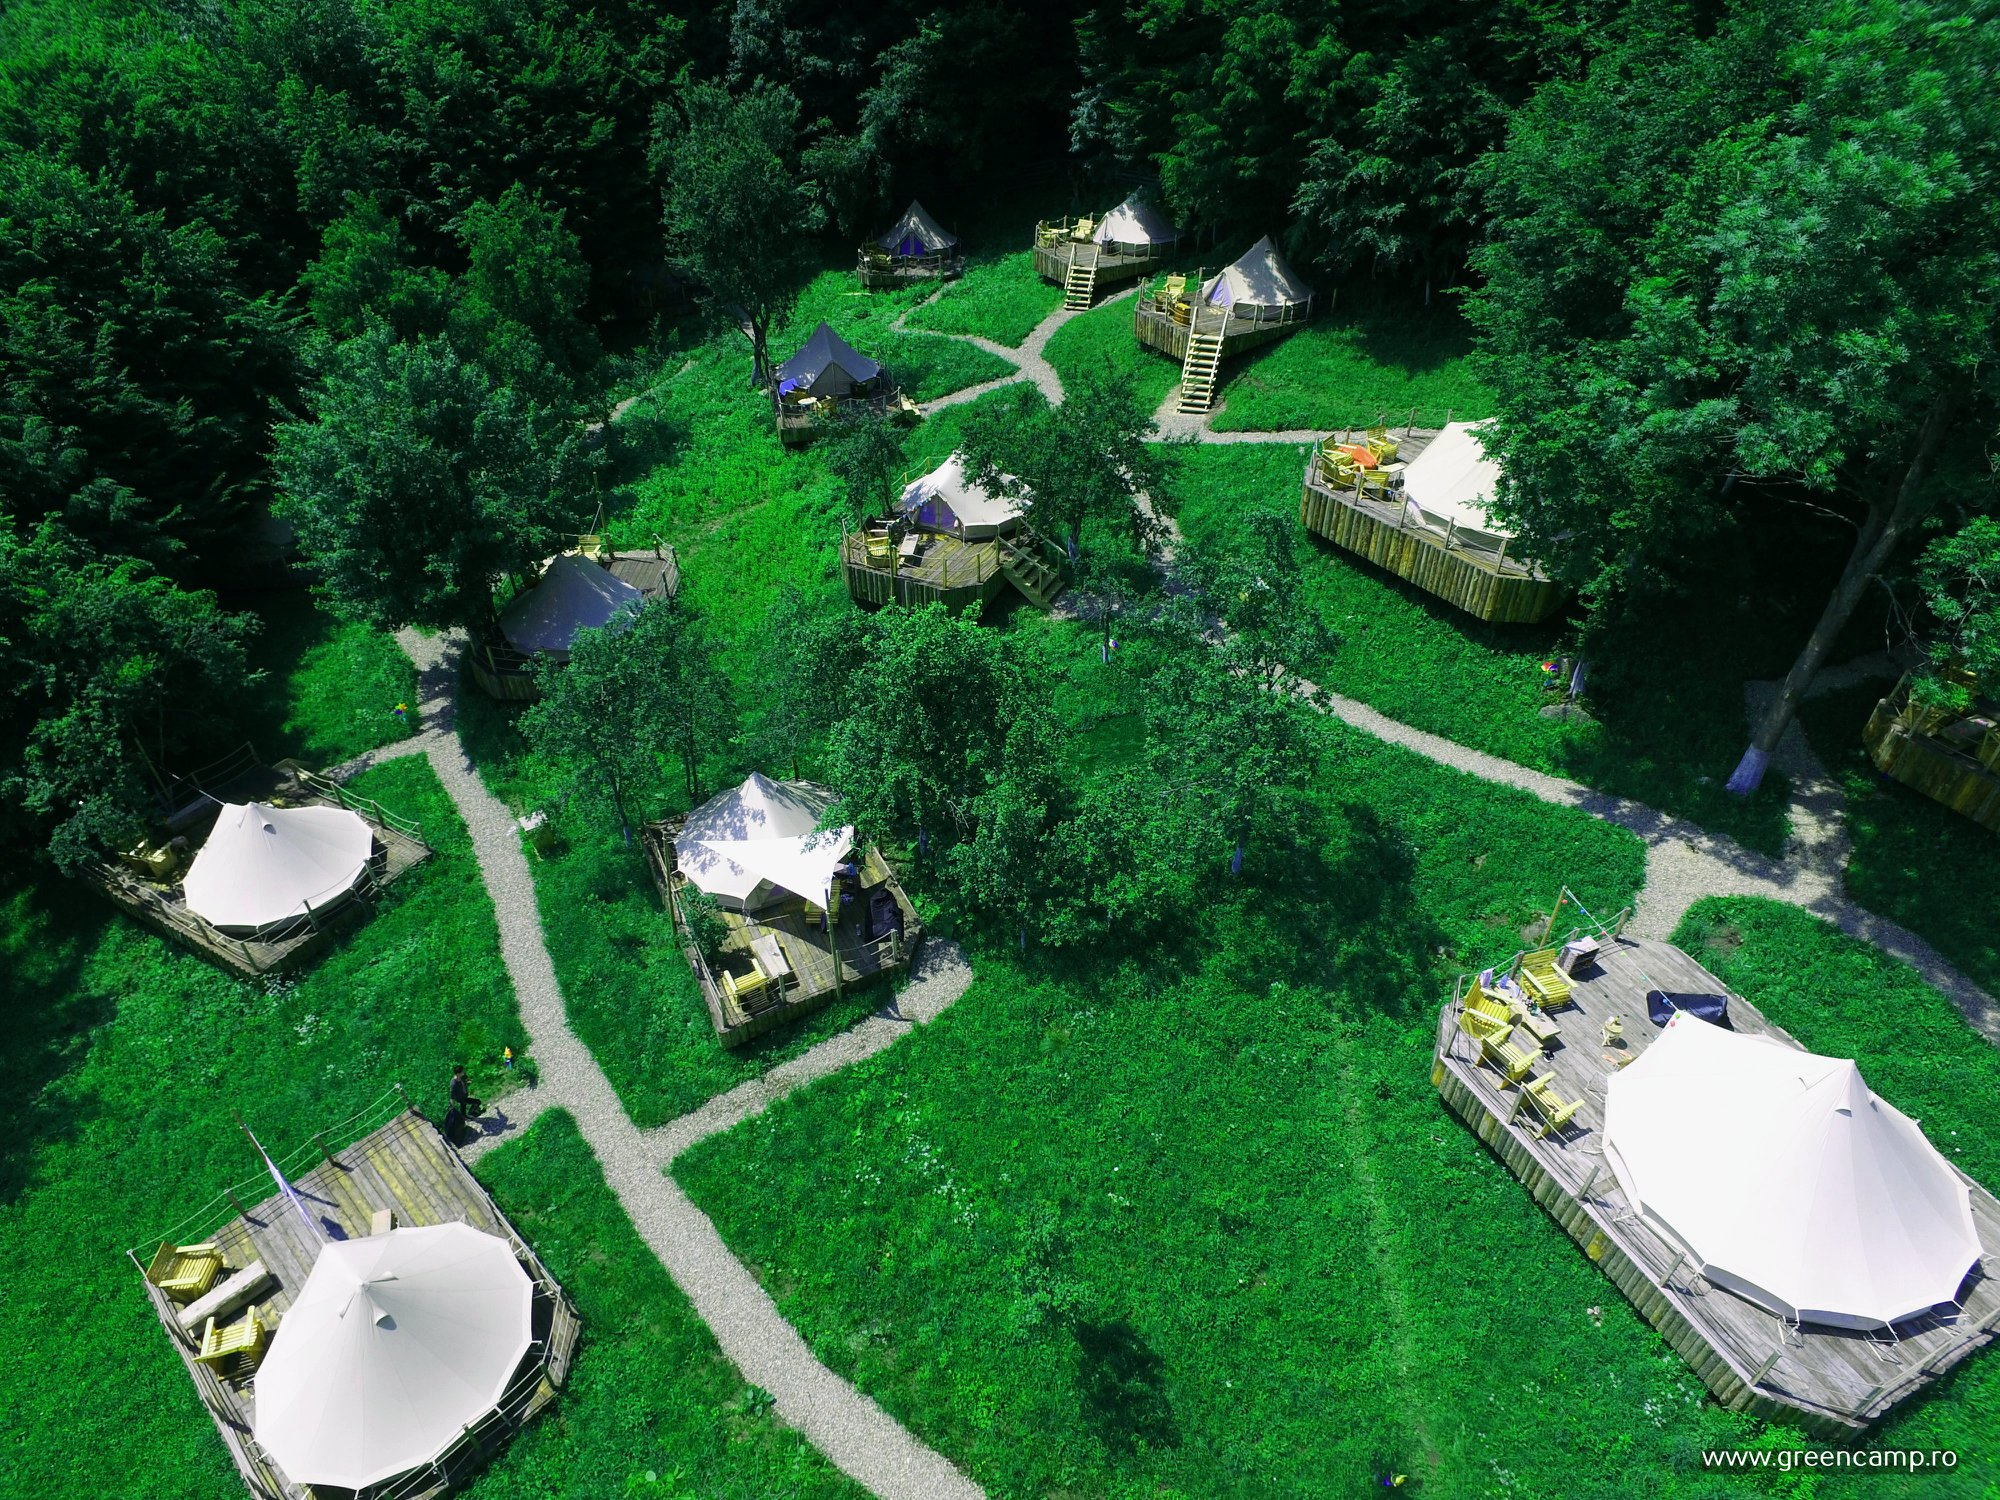 destinatii-de-weekend-langa-bucuresti-green-camp